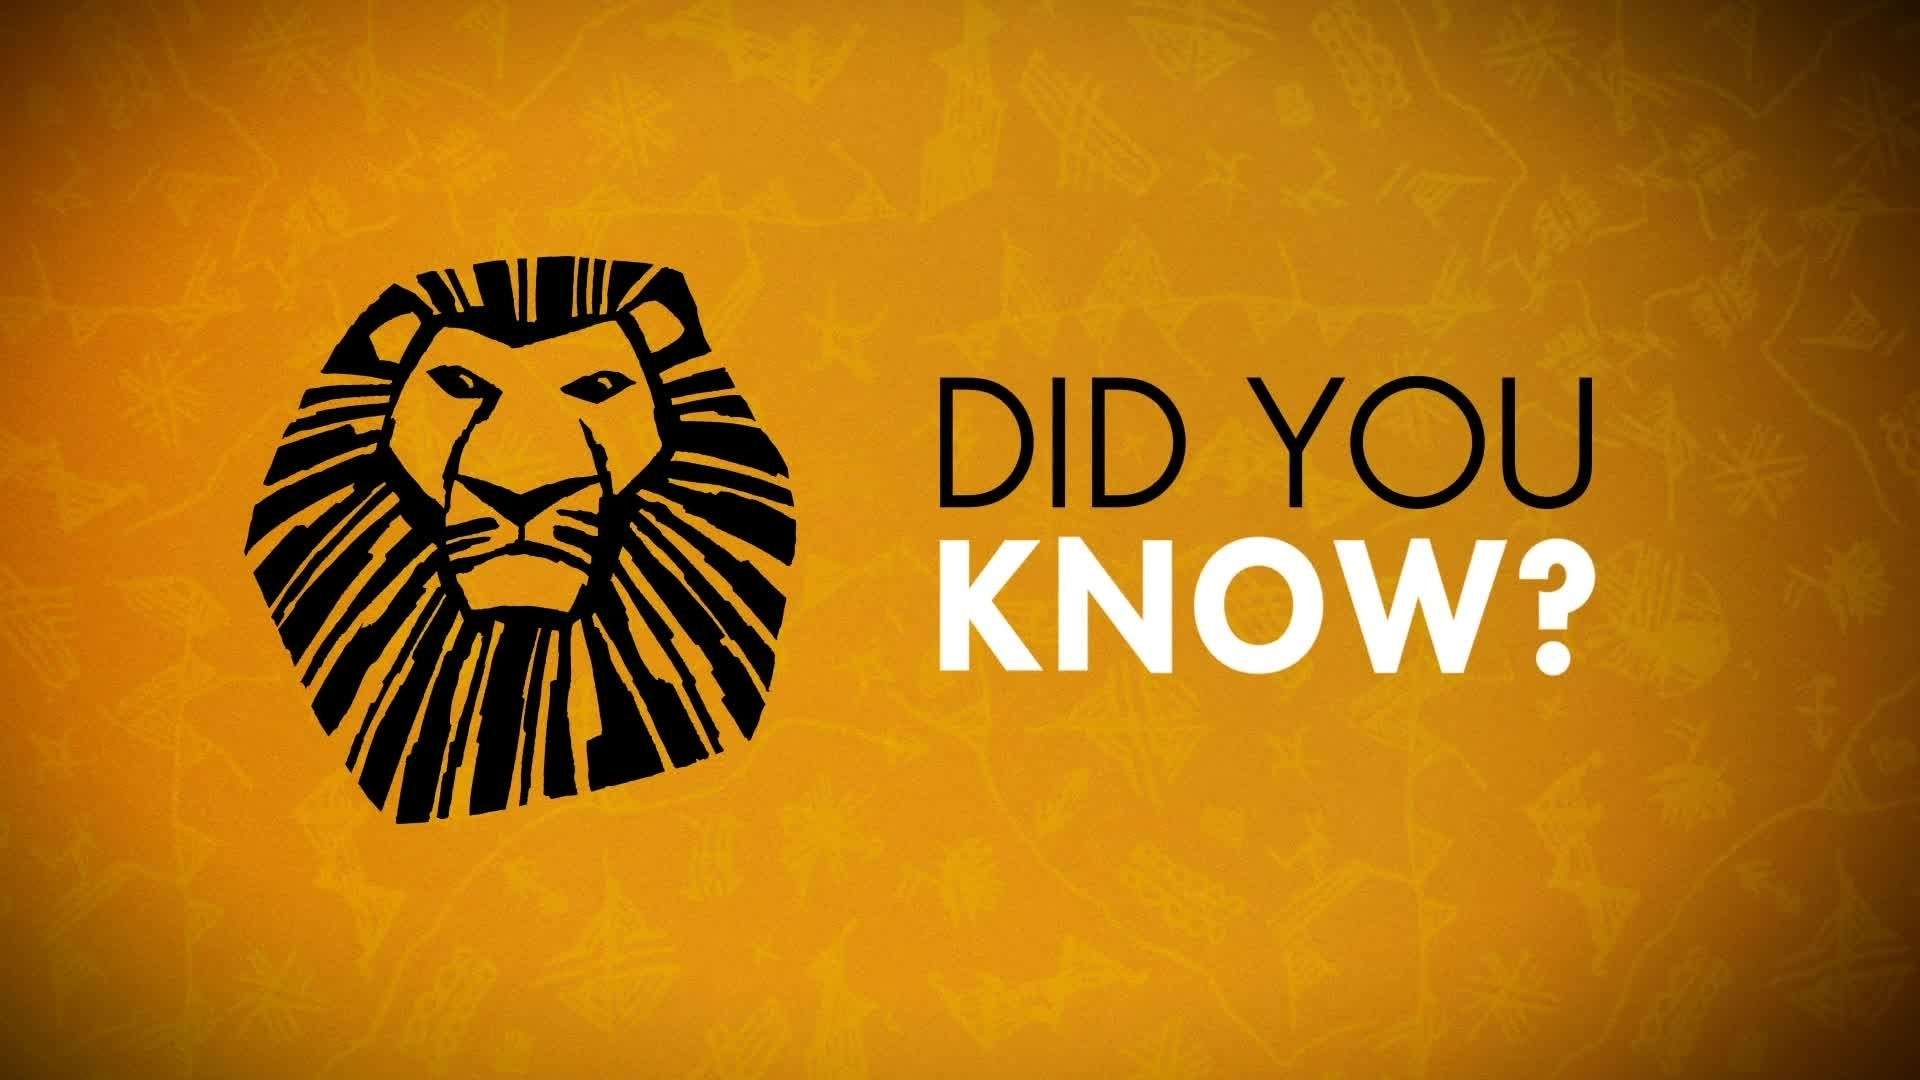 Did You Know? - The Lion King